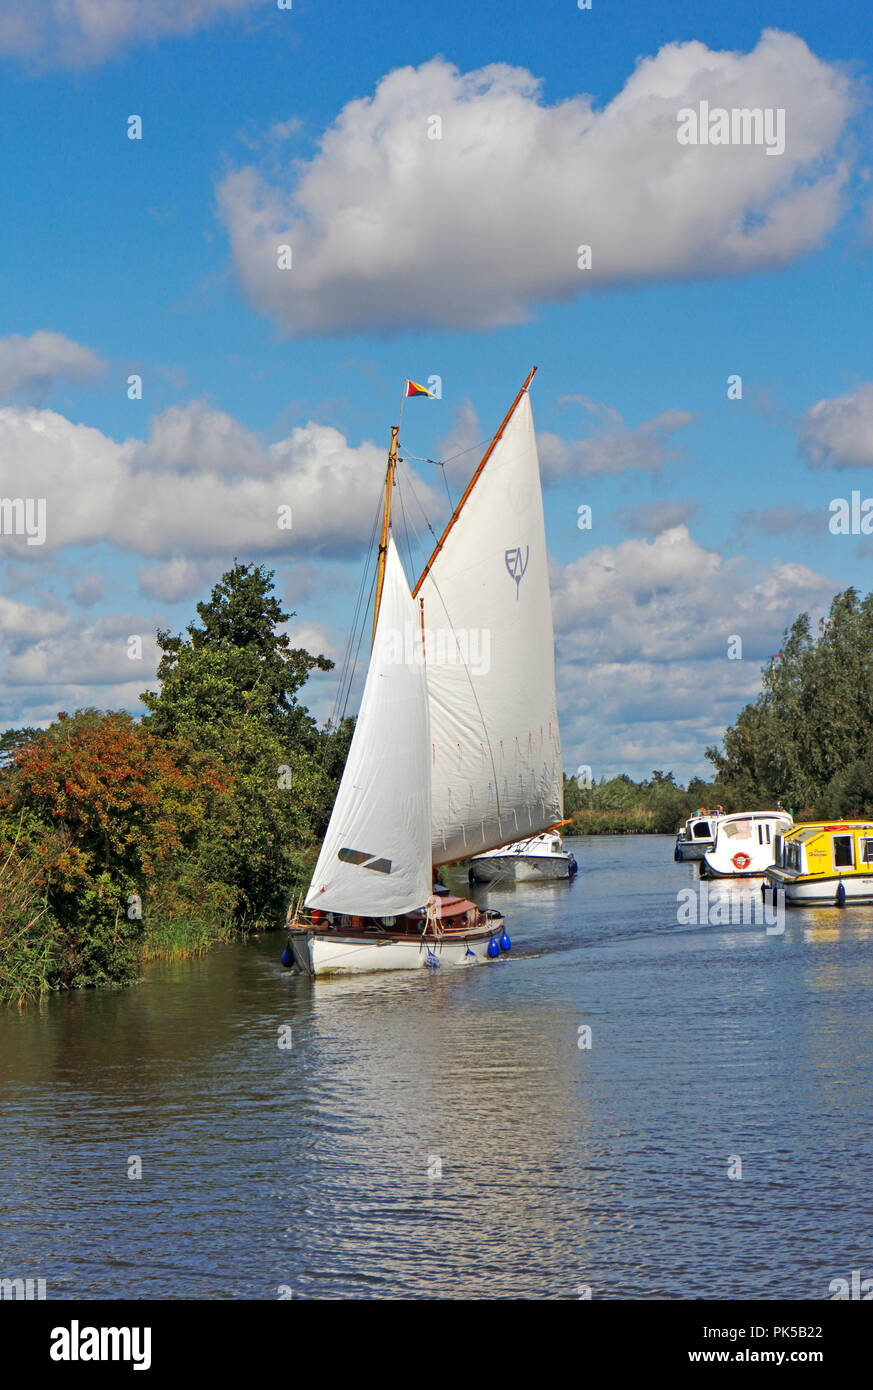 A yacht in full sail with motor cruisers on the River Ant on the Norfolk Broads by How Hill, Ludham, Norfolk, England, United Kingdom, Europe. - Stock Image